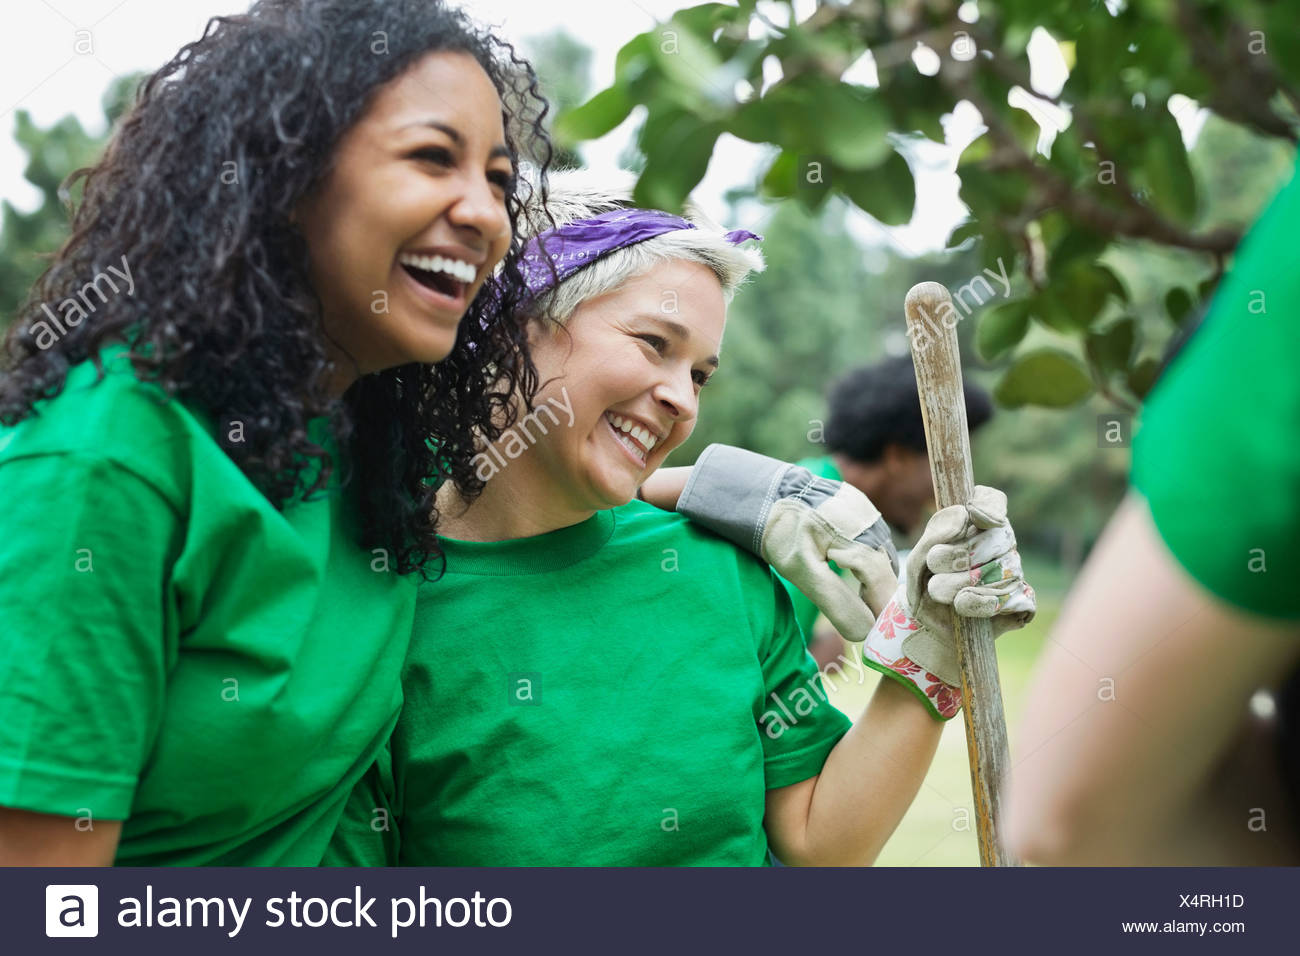 Happy young female environmentalist with friend holding shovel in park - Stock Image